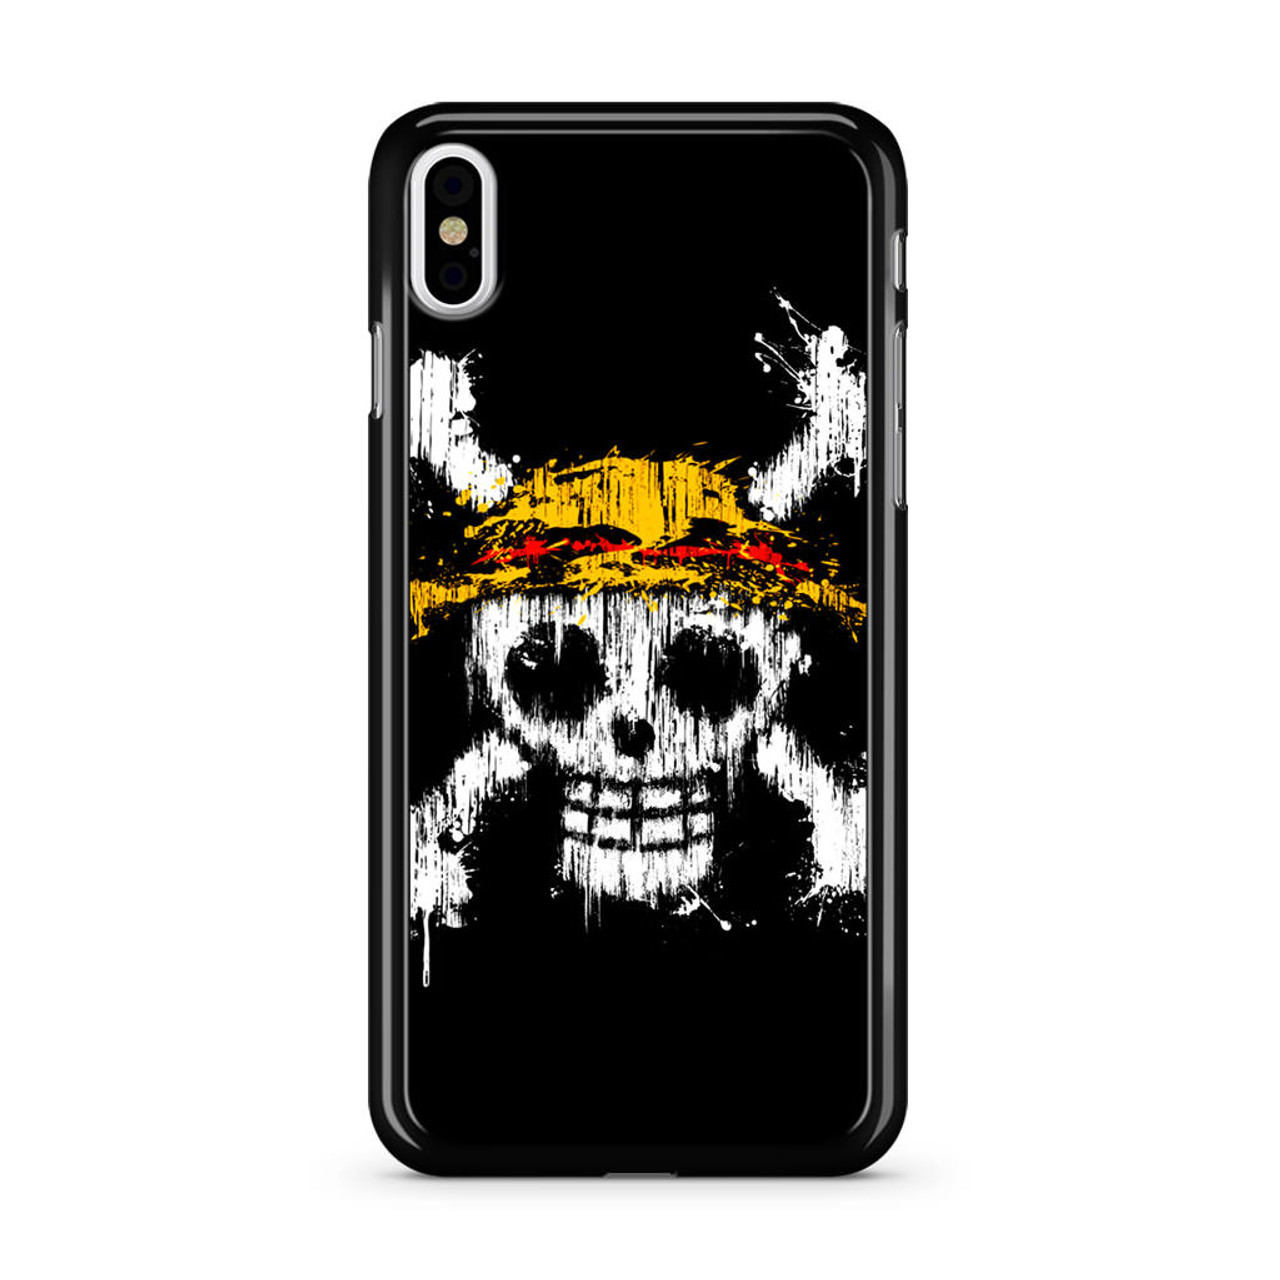 One Piece Skull iPhone X Case - CASESHUNTER 7326630f4